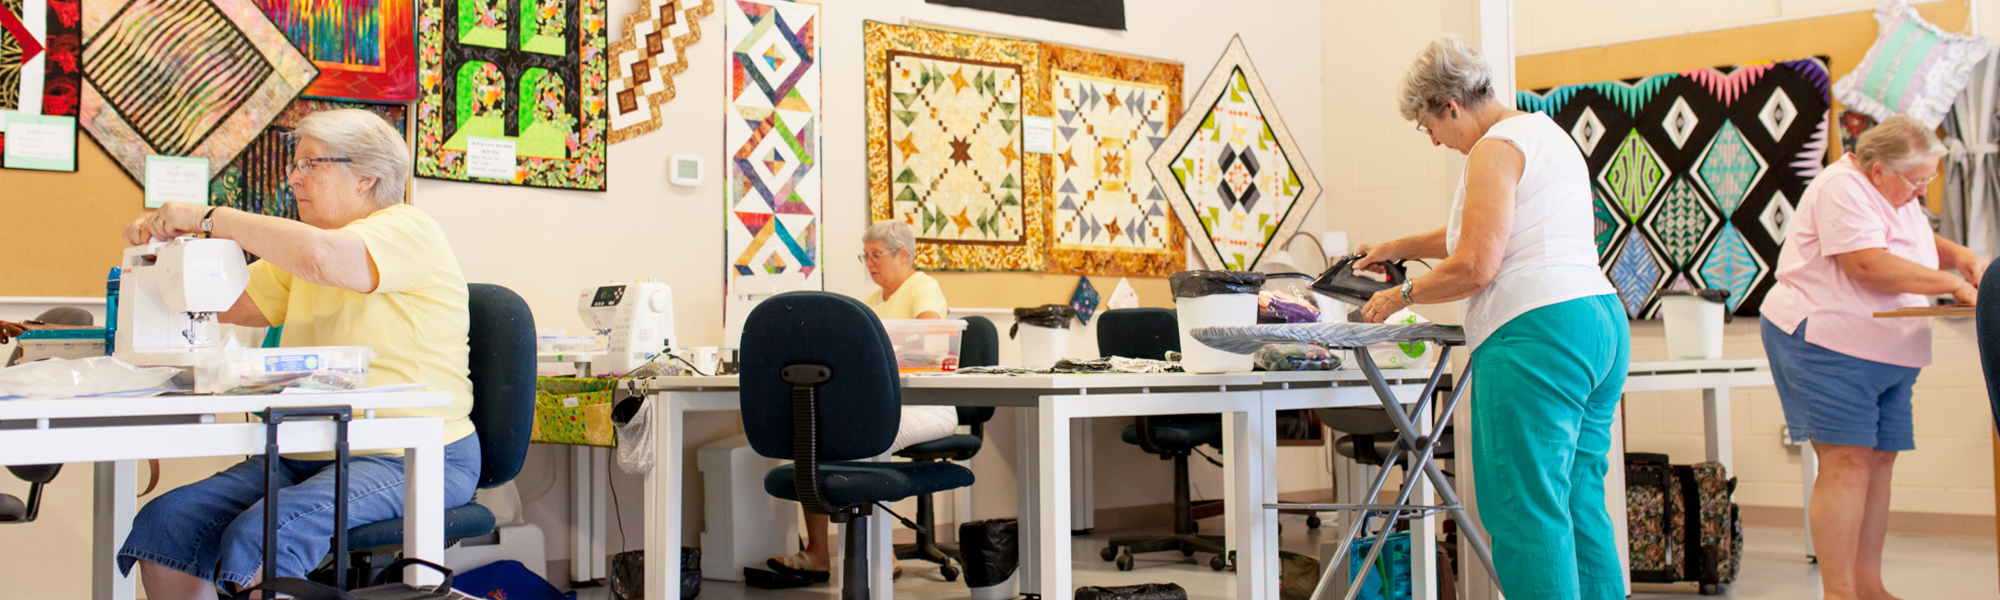 Sewing And Quilting Classes In Kelowna